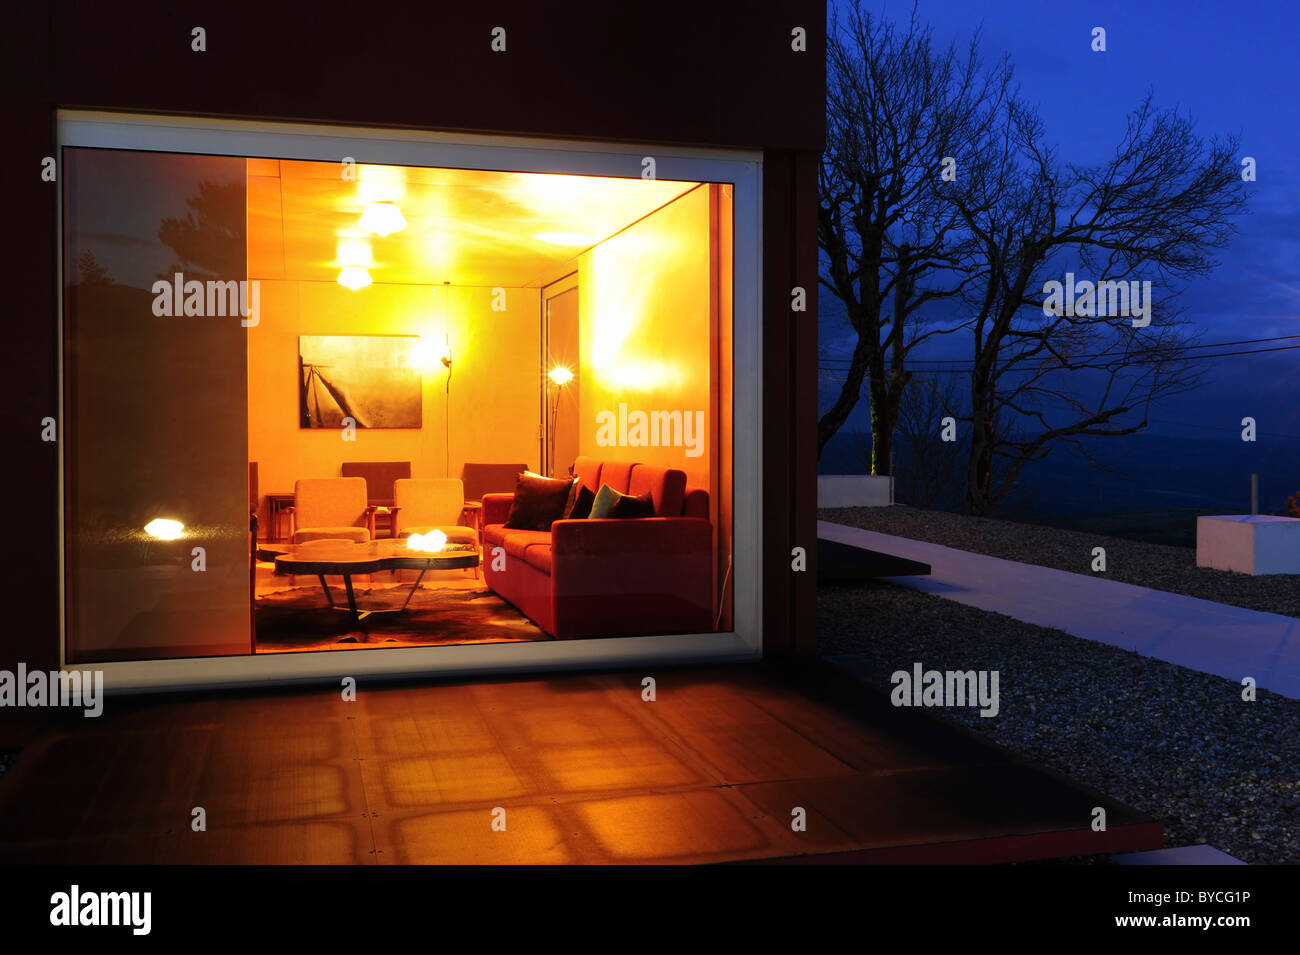 Inside View Of Warm Living Room Through Large Window On A Cold Winter Night At Dusk